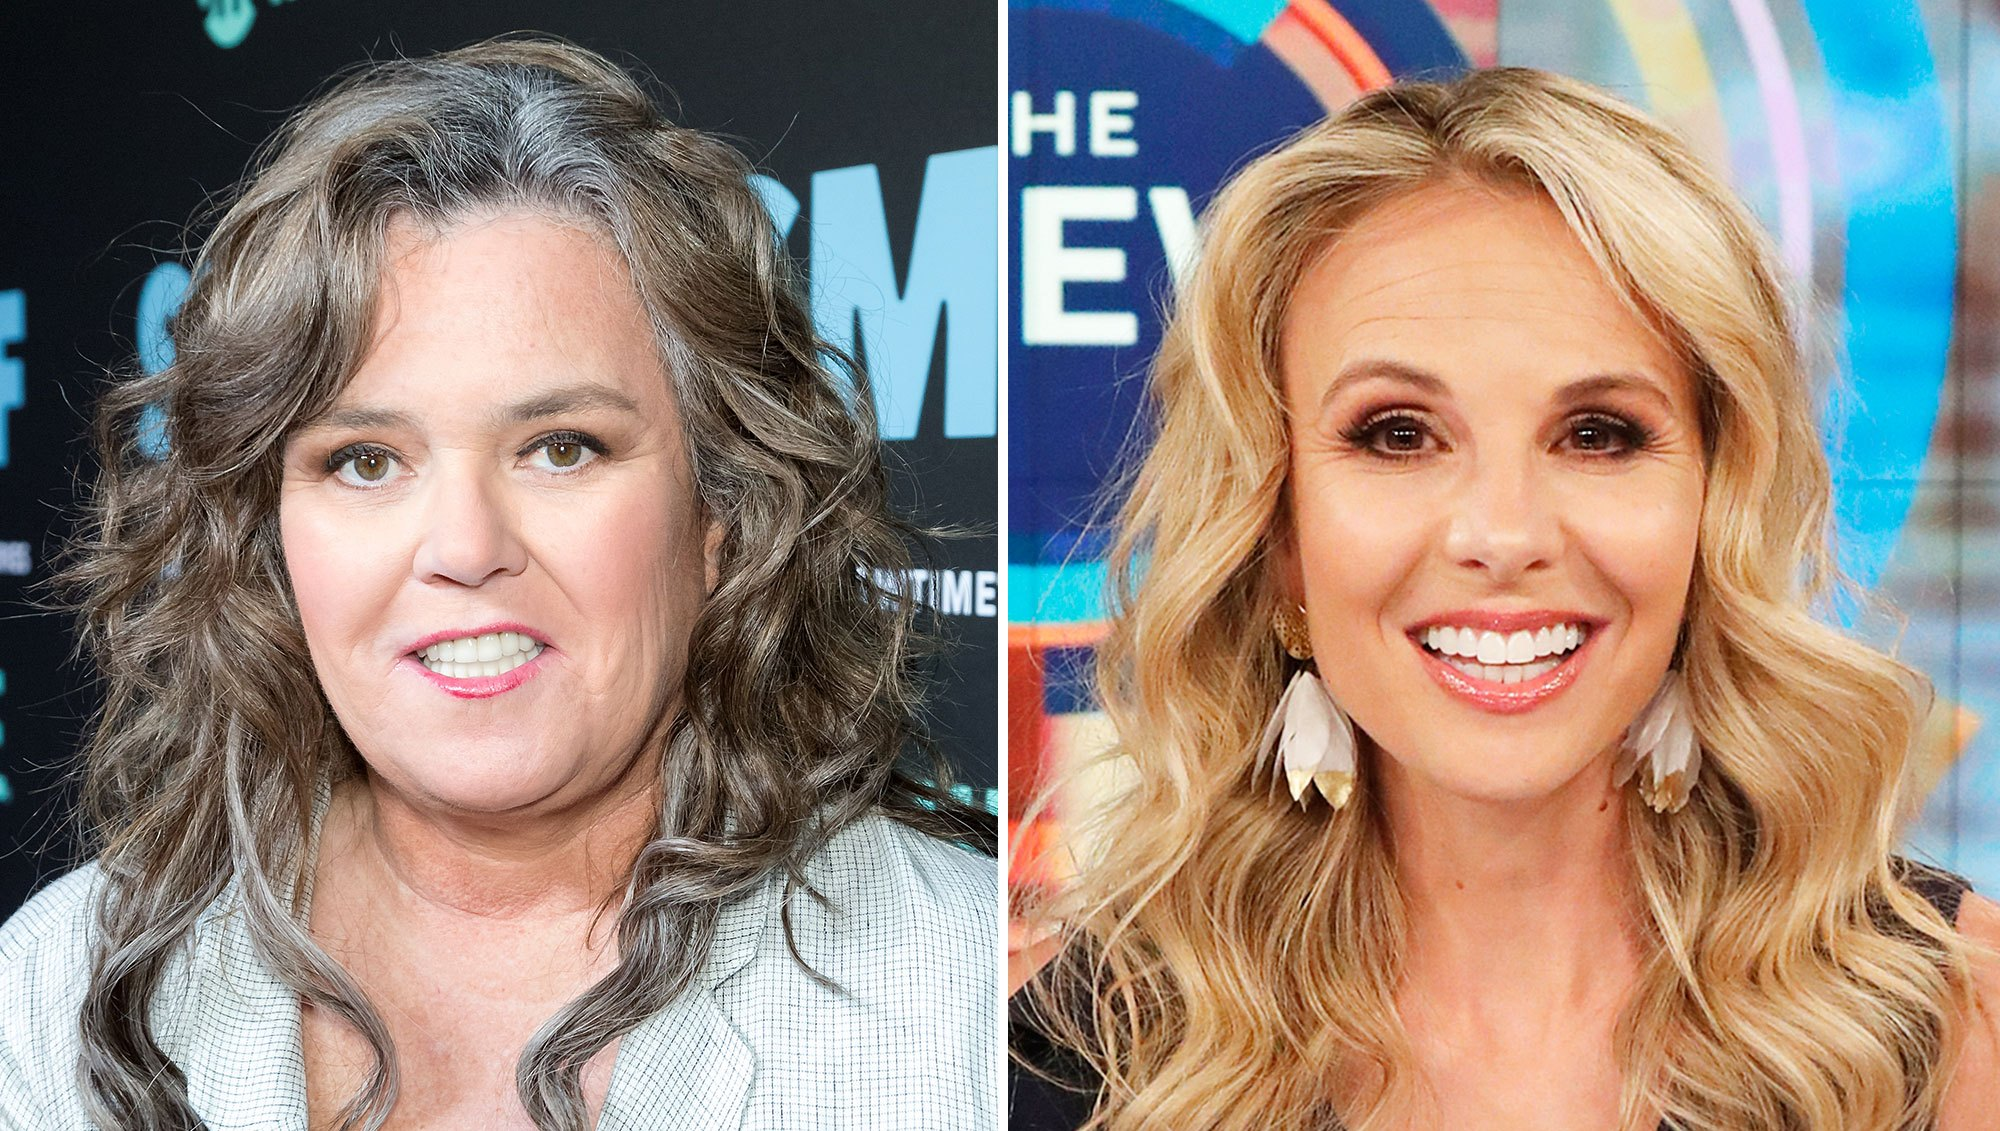 Rosie O'Donnell Responds Elisabeth Hasselbeck Crush Reaction Not Sexual